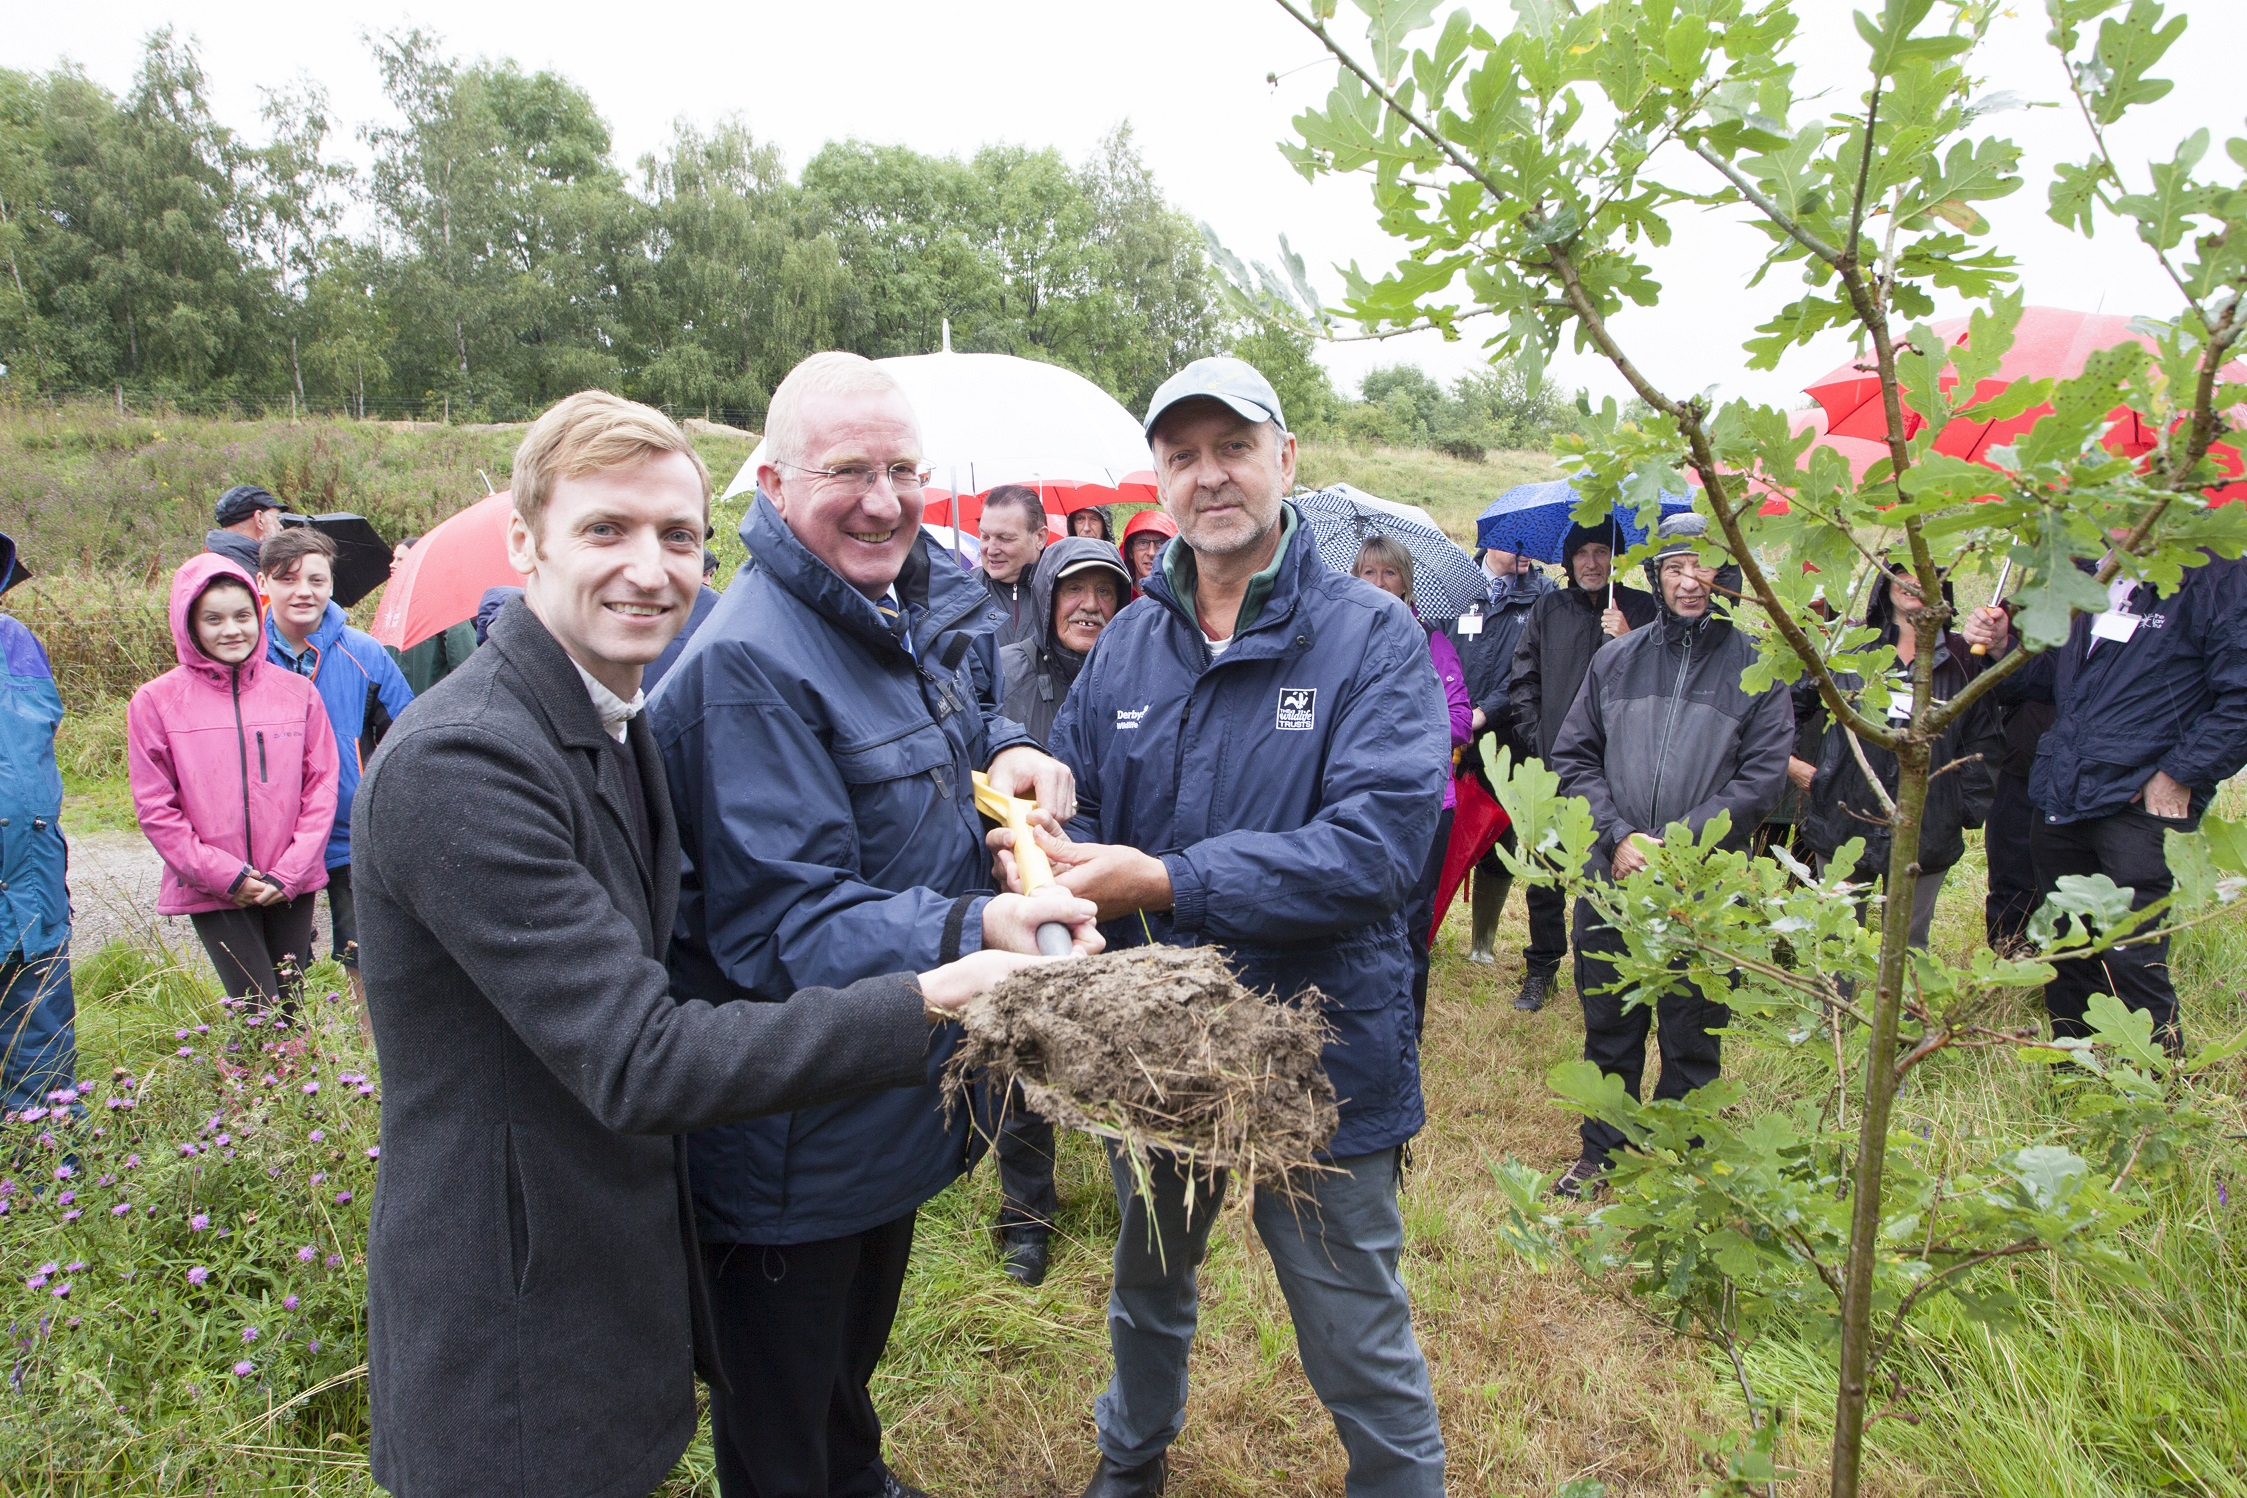 Planting an oak tree at Avenue Washlands Nature Reserve 10th anniversary